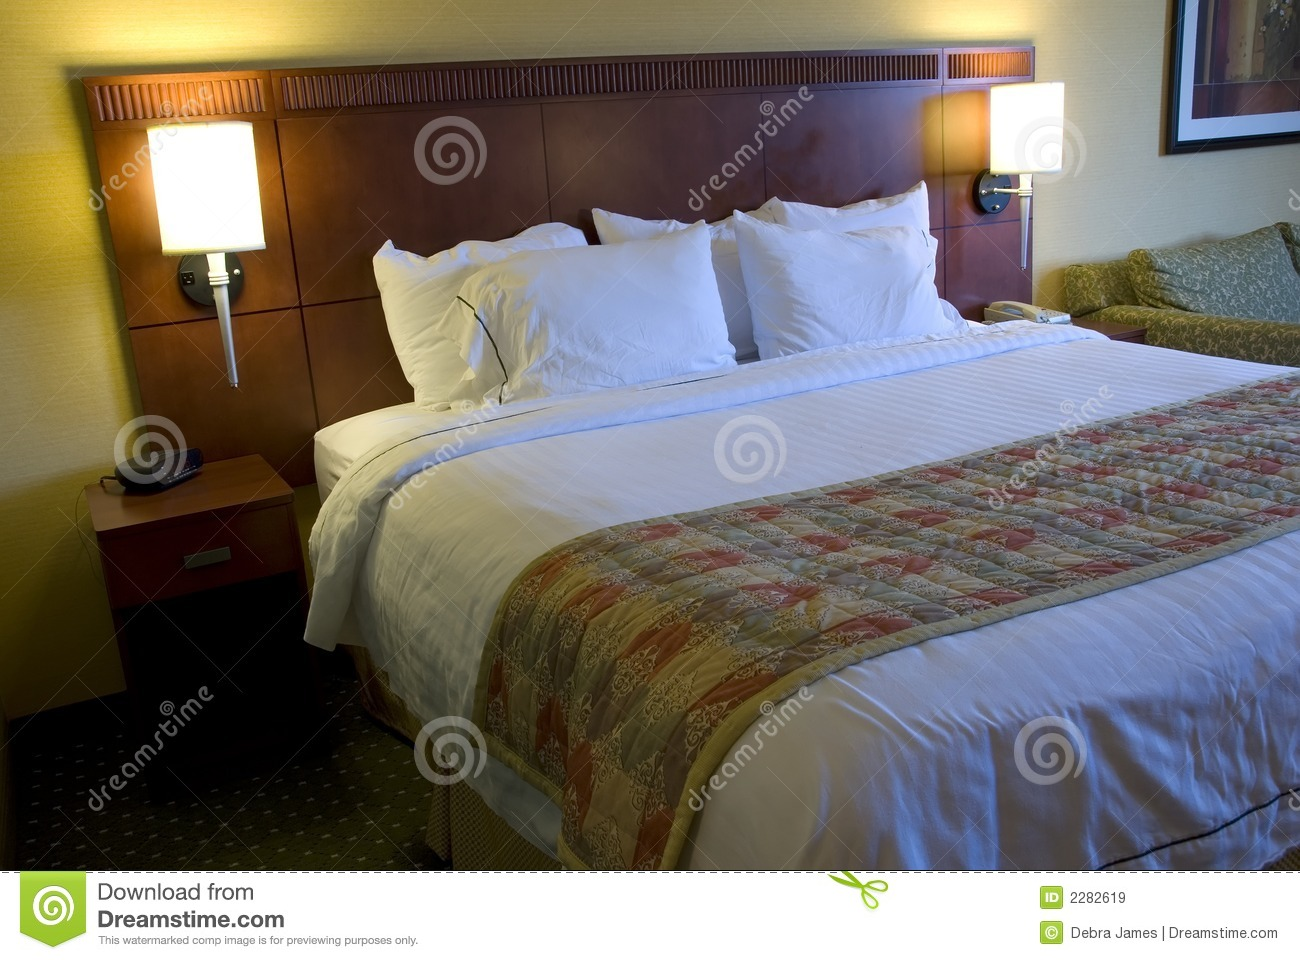 Lamps Bedroom Hotel Bed And Lamps Royalty Free Stock Images Image 2282619